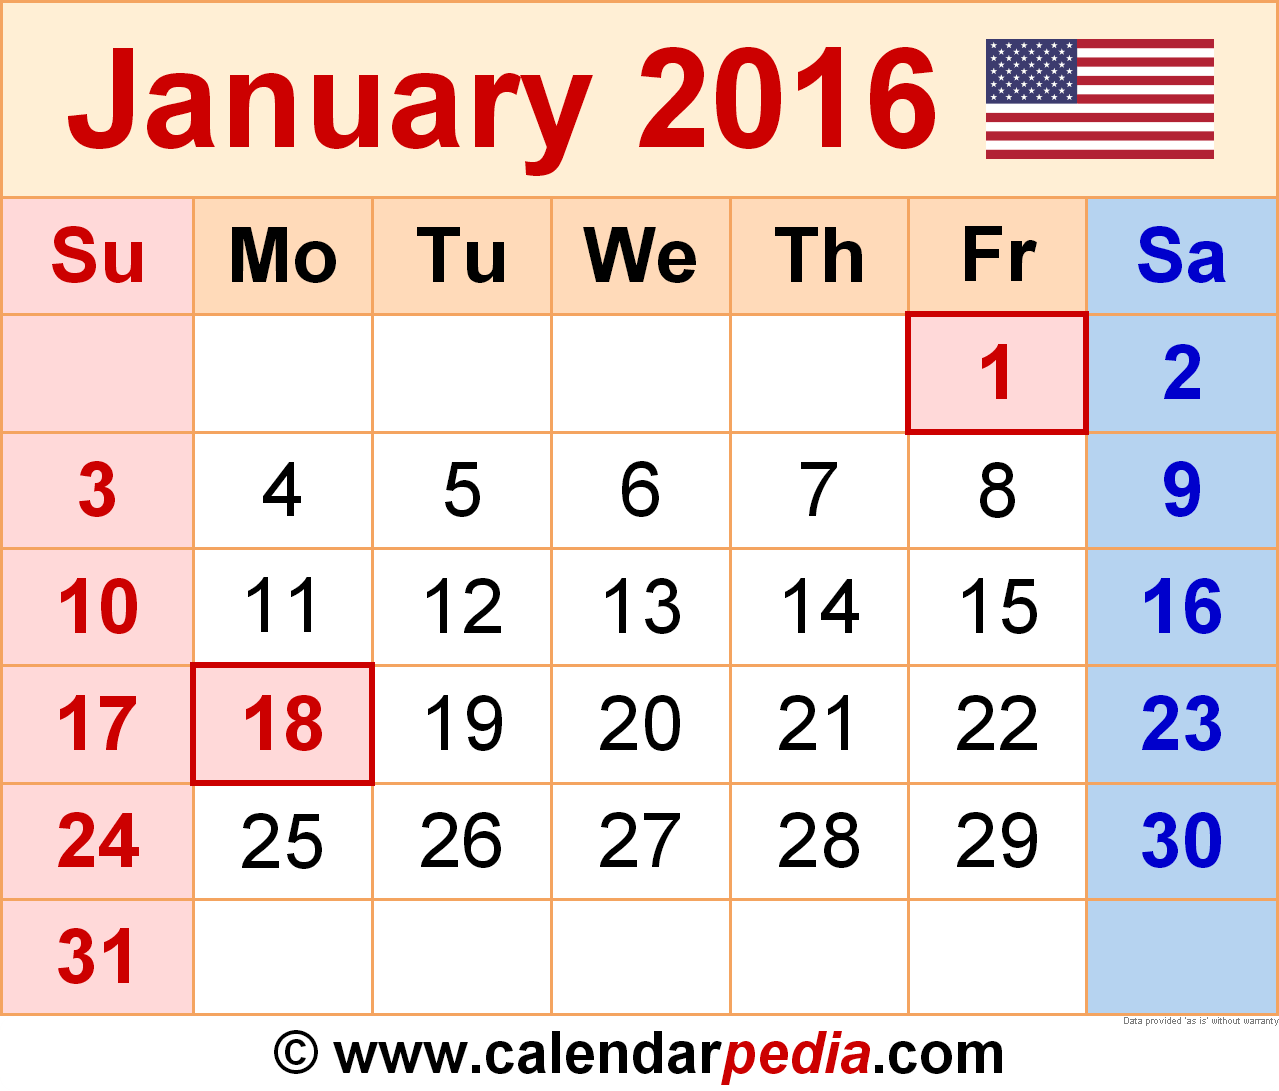 2016 january calendar clipart png download January holidays calendar clipart - ClipartFest png download